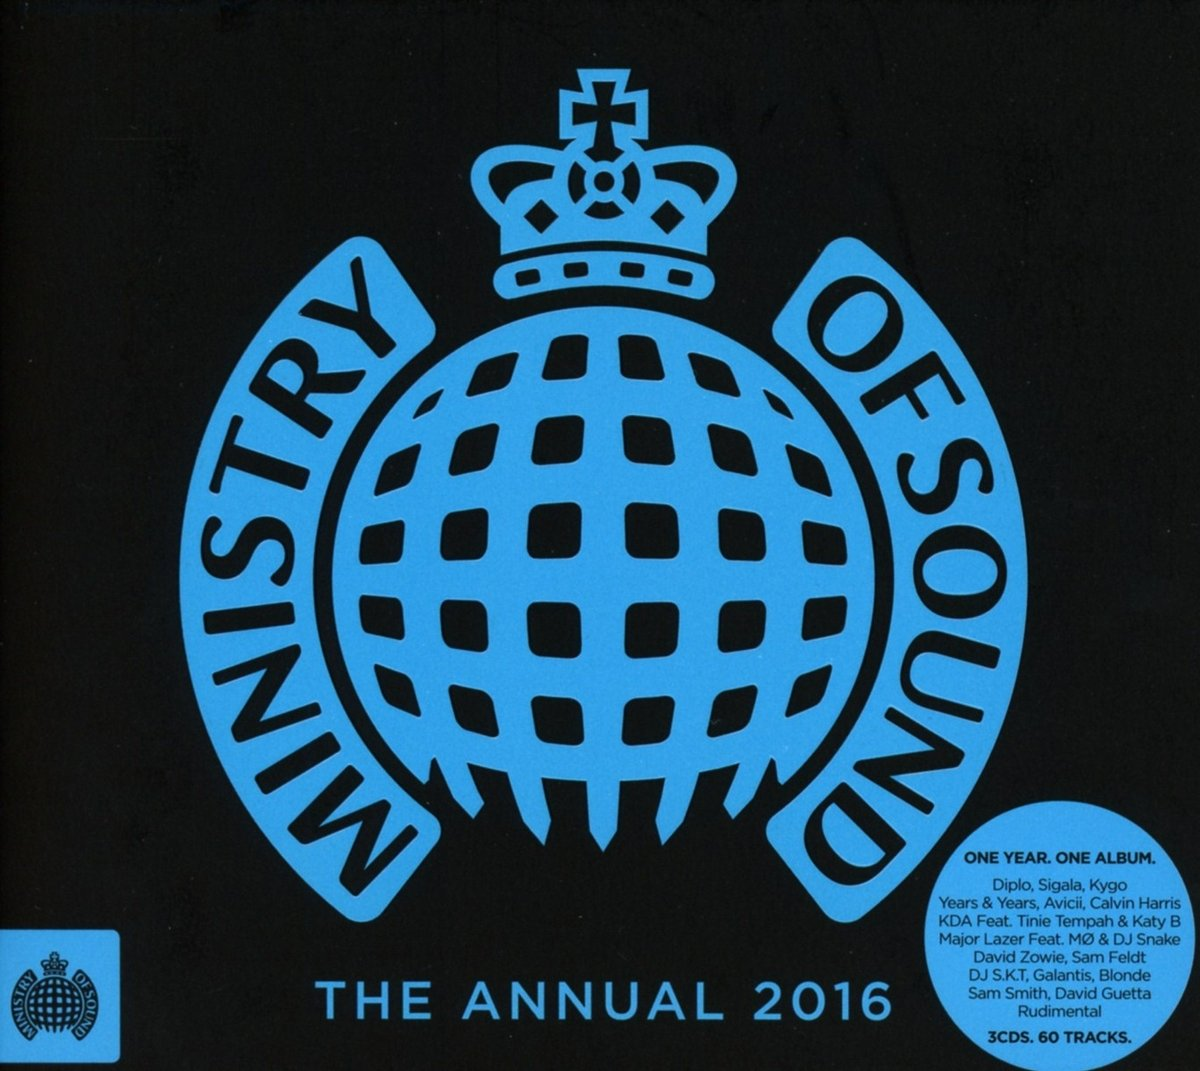 ministry of sound 20 years download